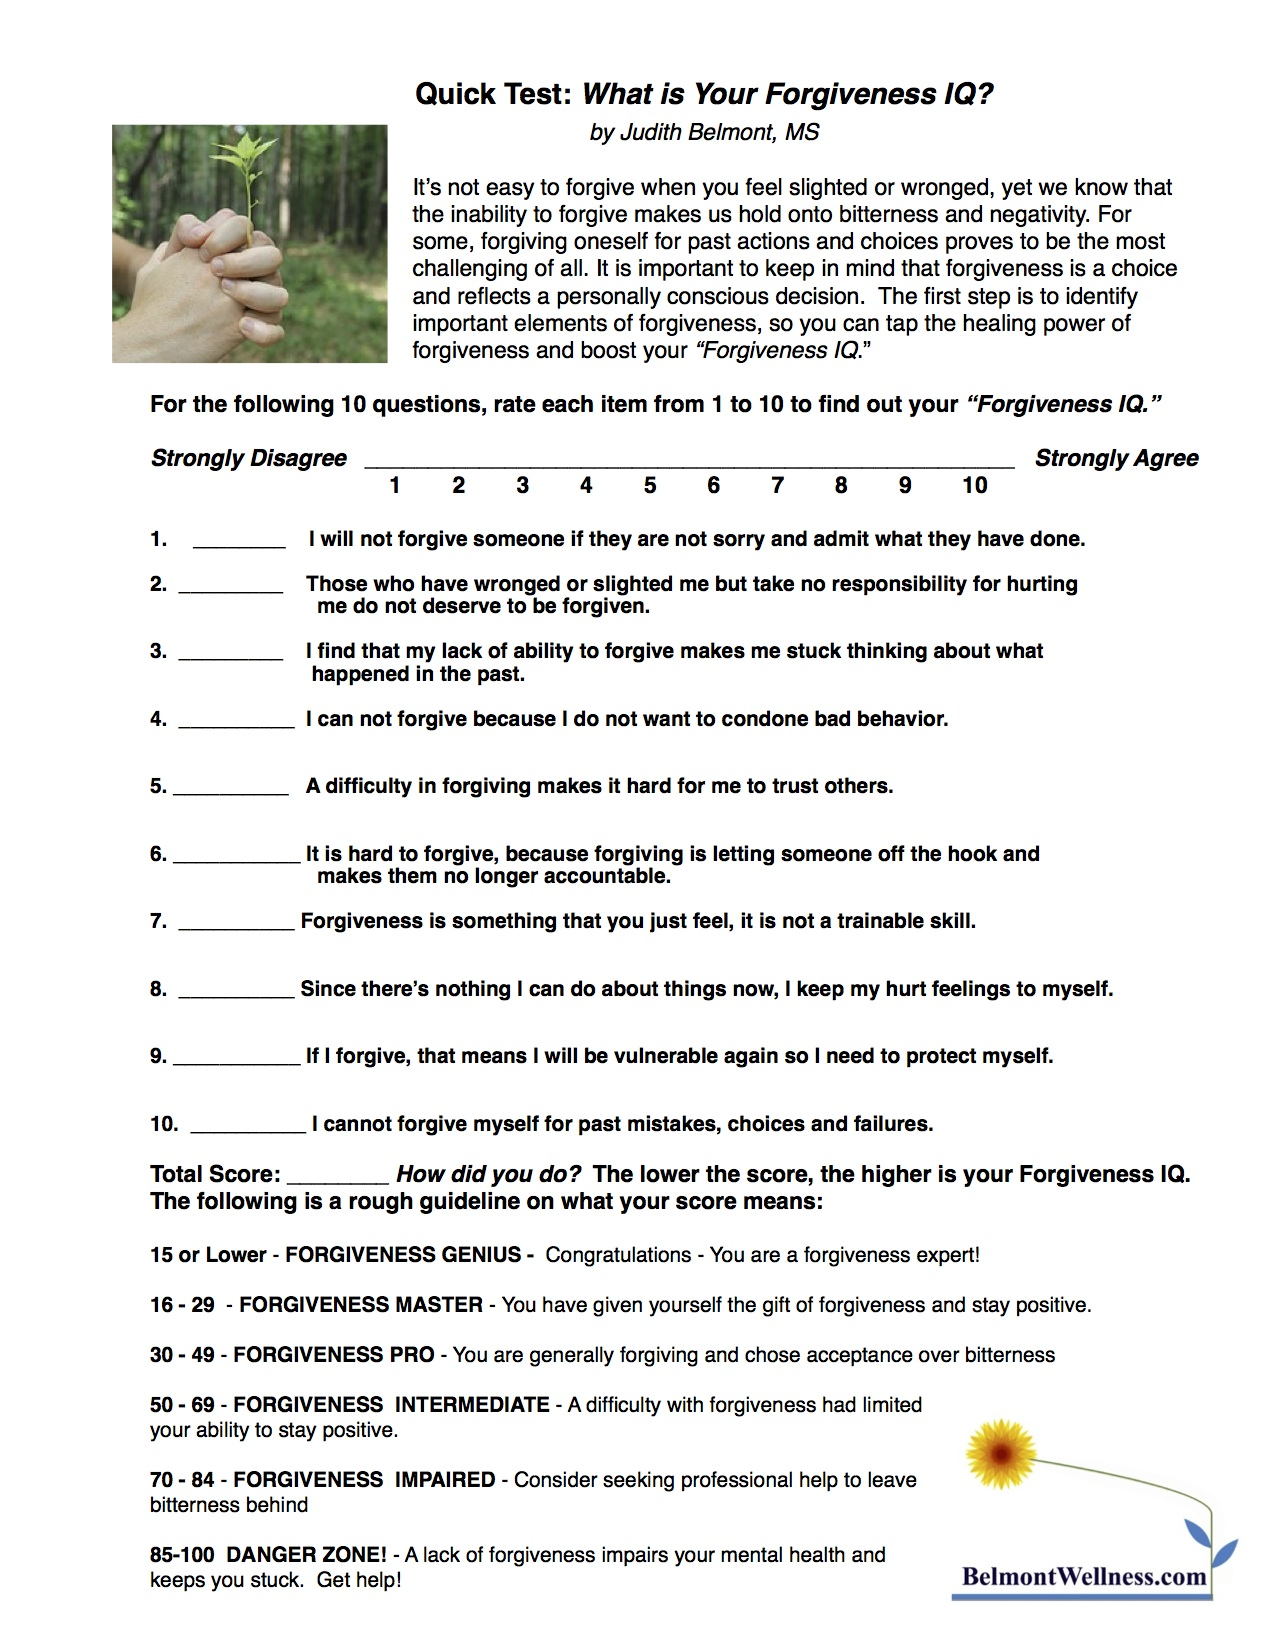 Worksheet Forgiveness Worksheets forgiveness self test judith belmont test